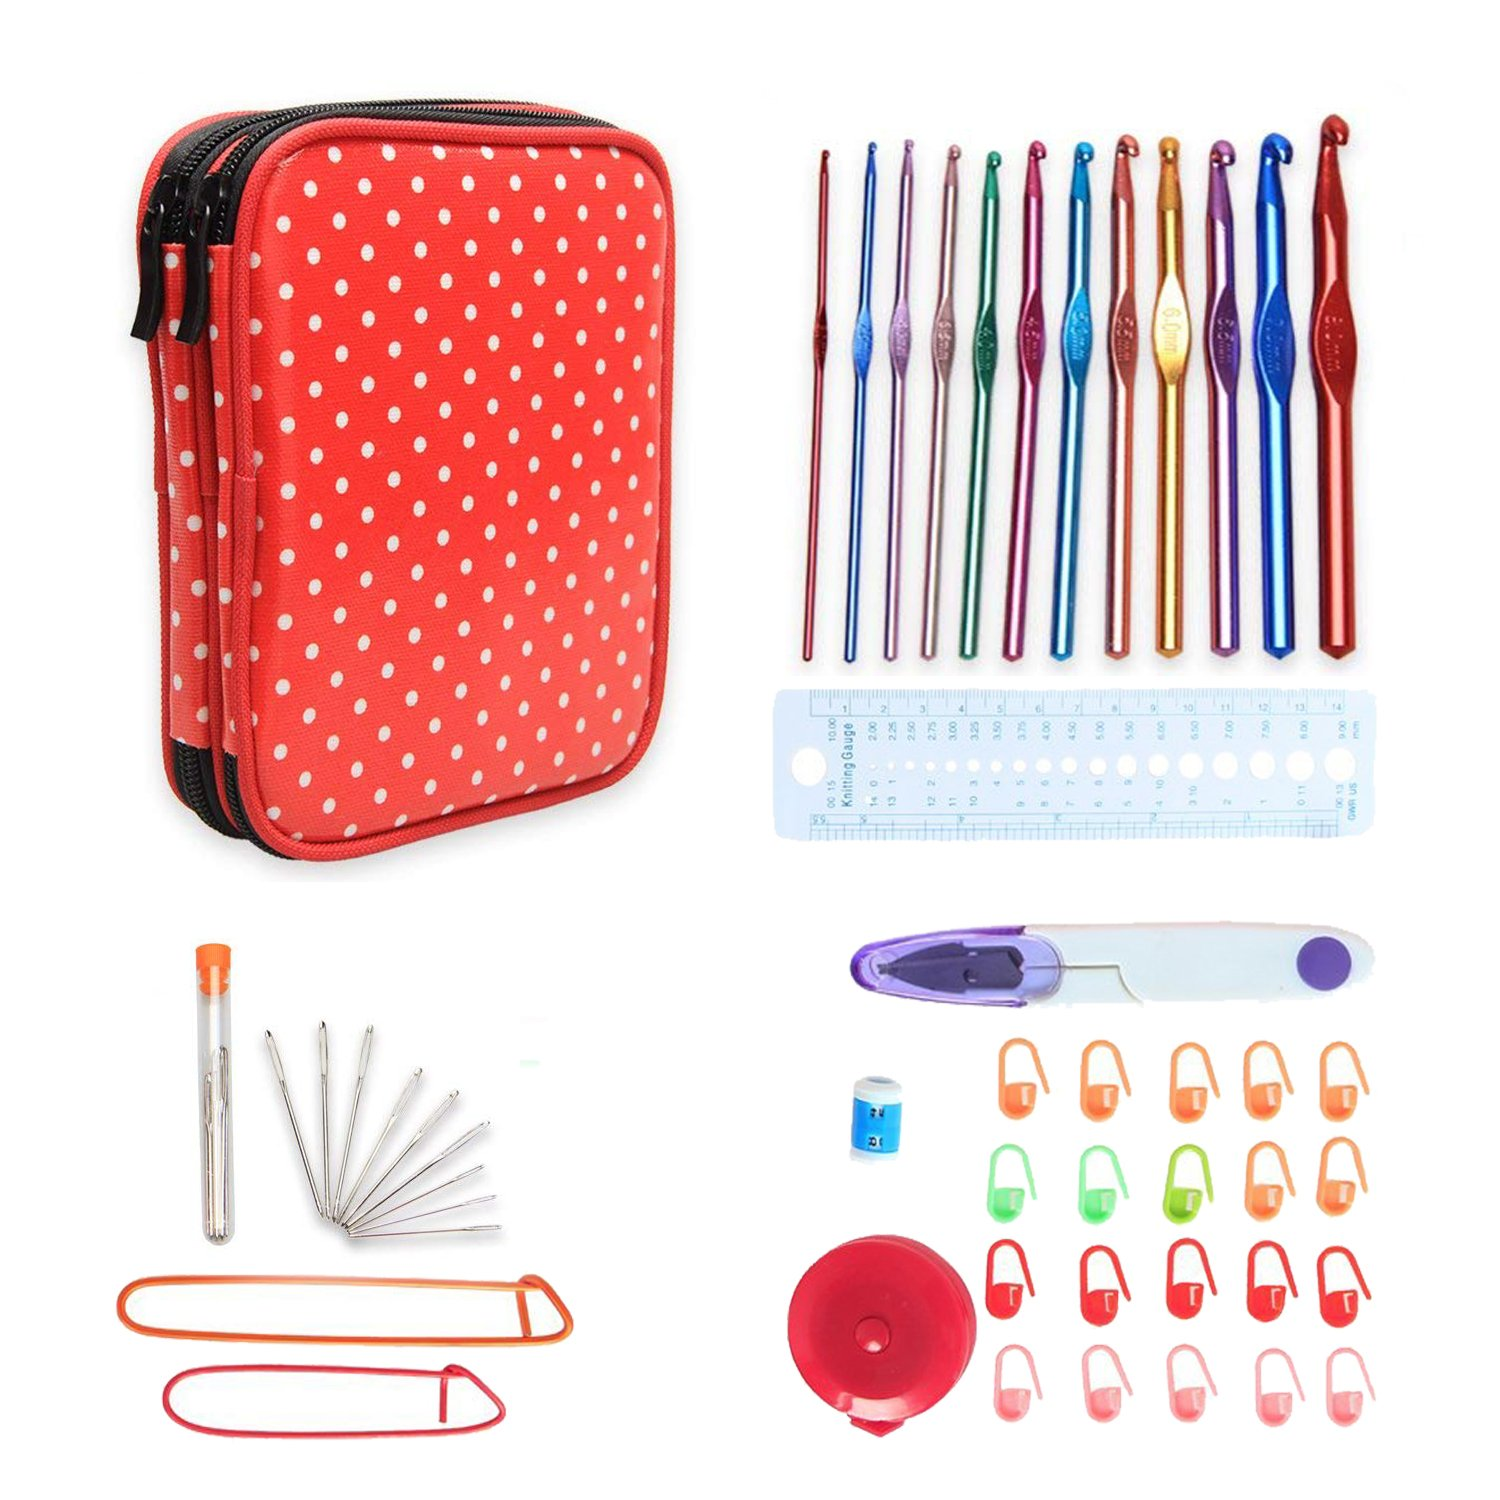 Teamoy Aluminum Crochet Hooks Set, Crochet Hook Organizer Case with 12pcs 2mm to 8mm Aluminum Hooks and Complete Accessories, All in One Place and Easy to Carry, Purple Dots Damai TY03203